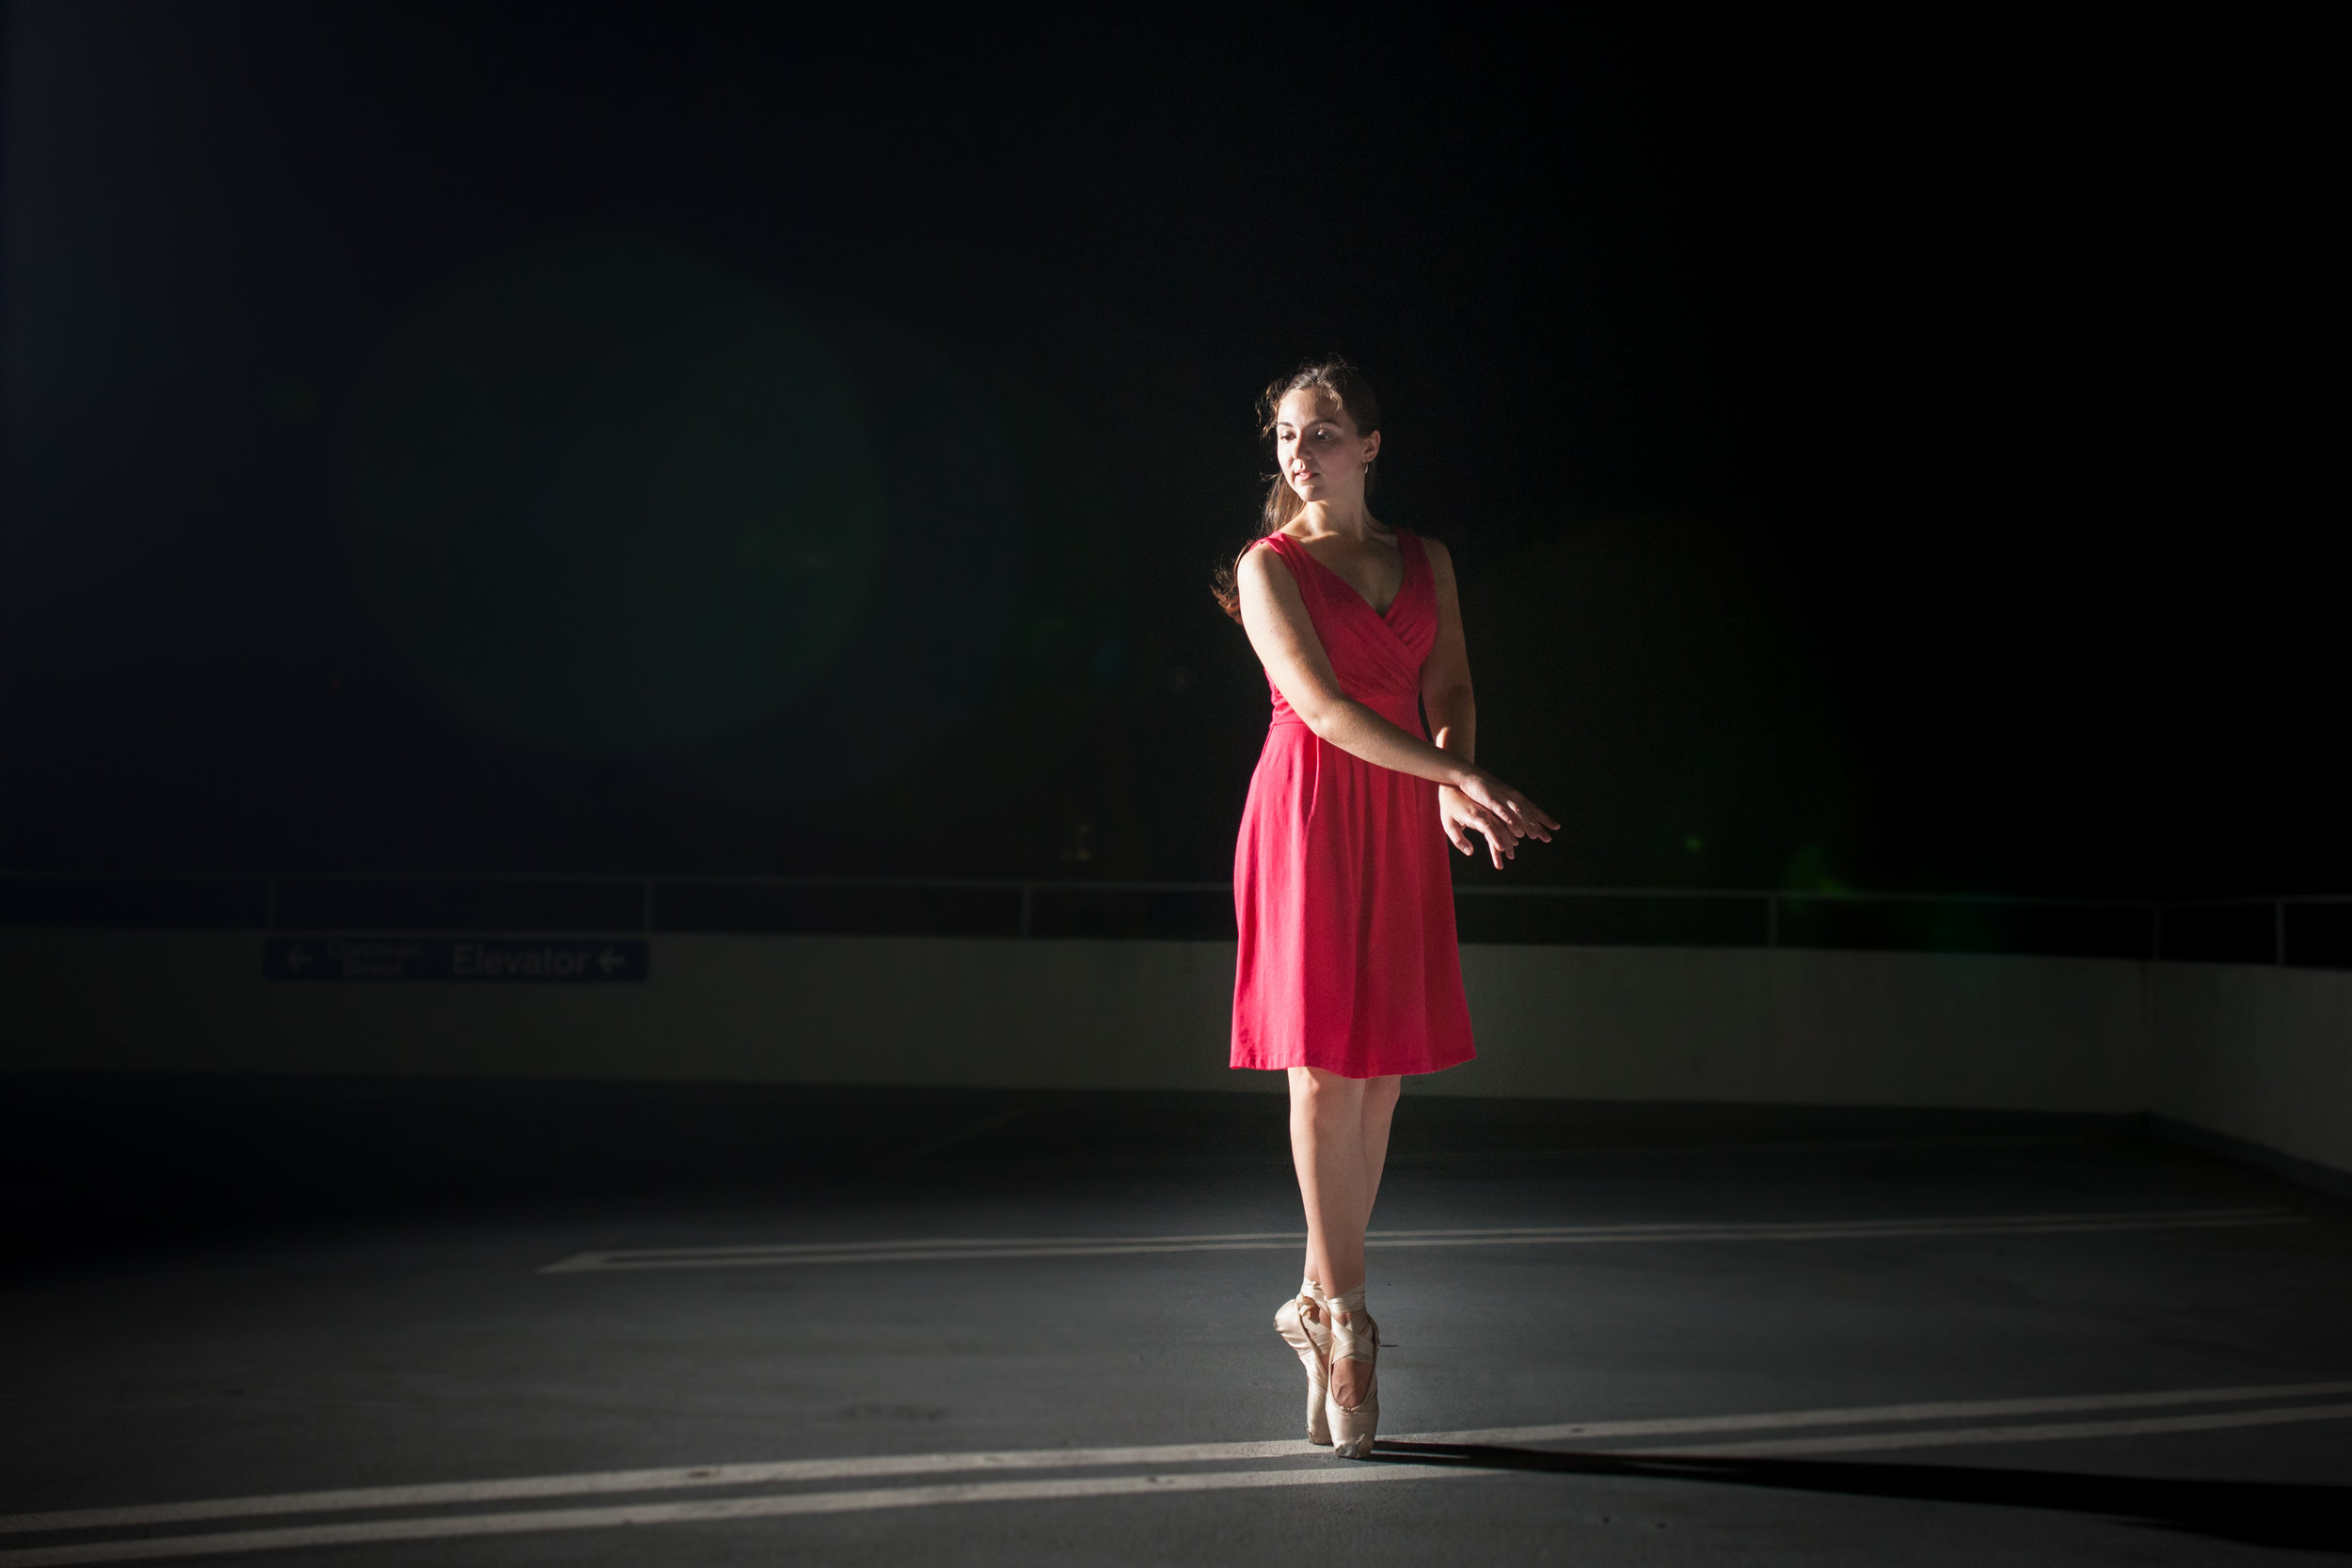 Anne Talkington - Click for a blog post featuring the beautiful Anne Talkington dancing on the Corcoran Parking Deck!